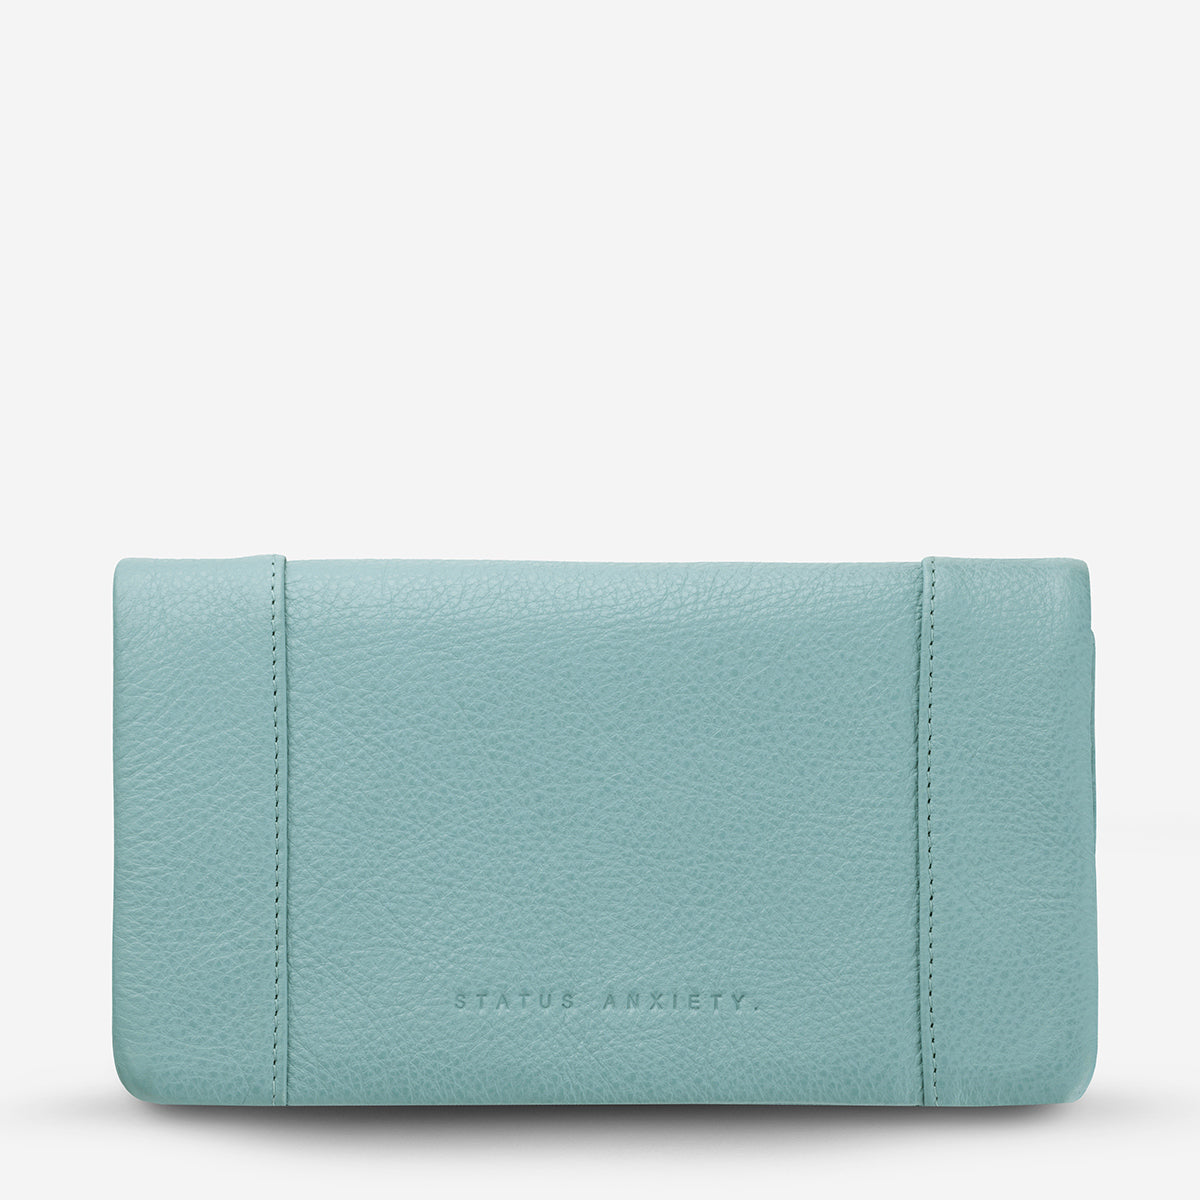 Status Anxiety Some Type Of Love Women's Leather Wallet - Sky